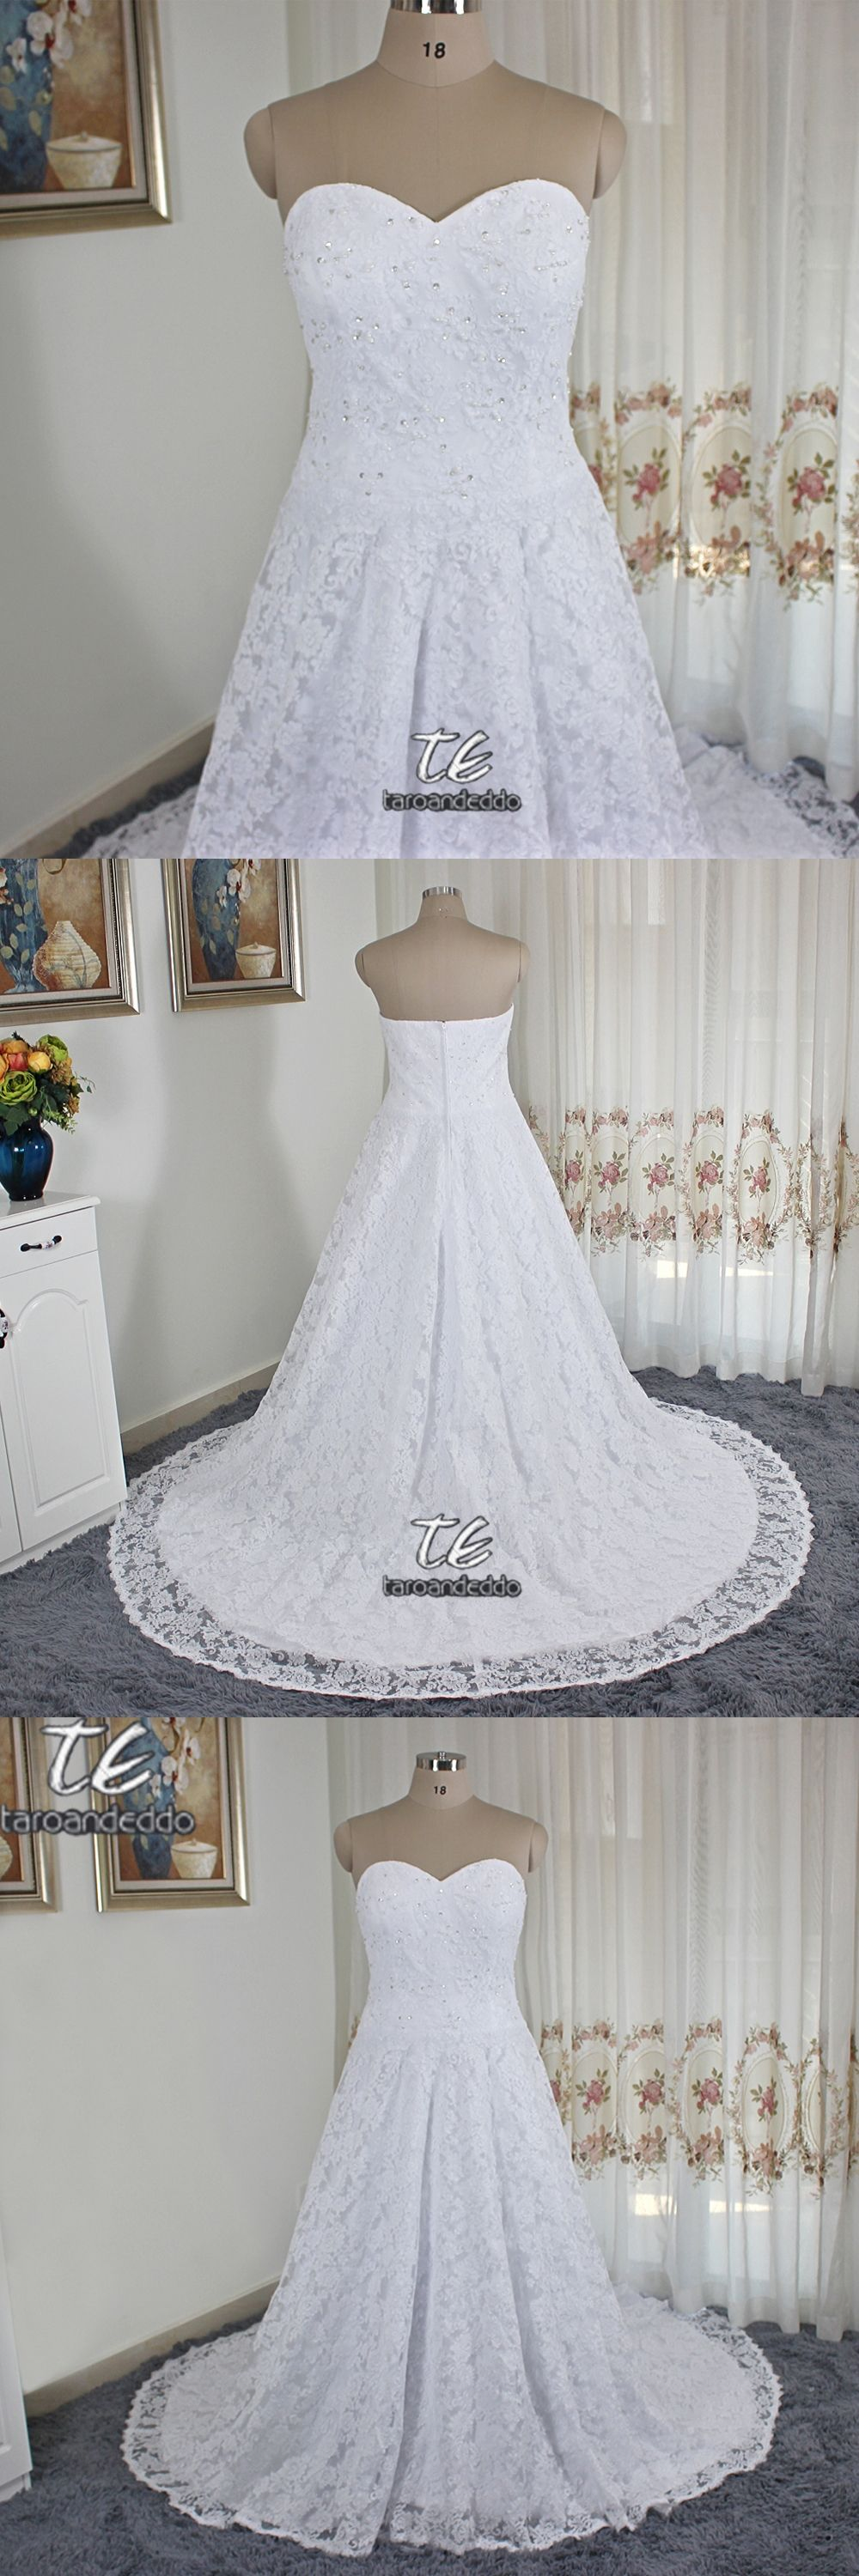 2018 sweetheart neckline france lace ball gown plus size